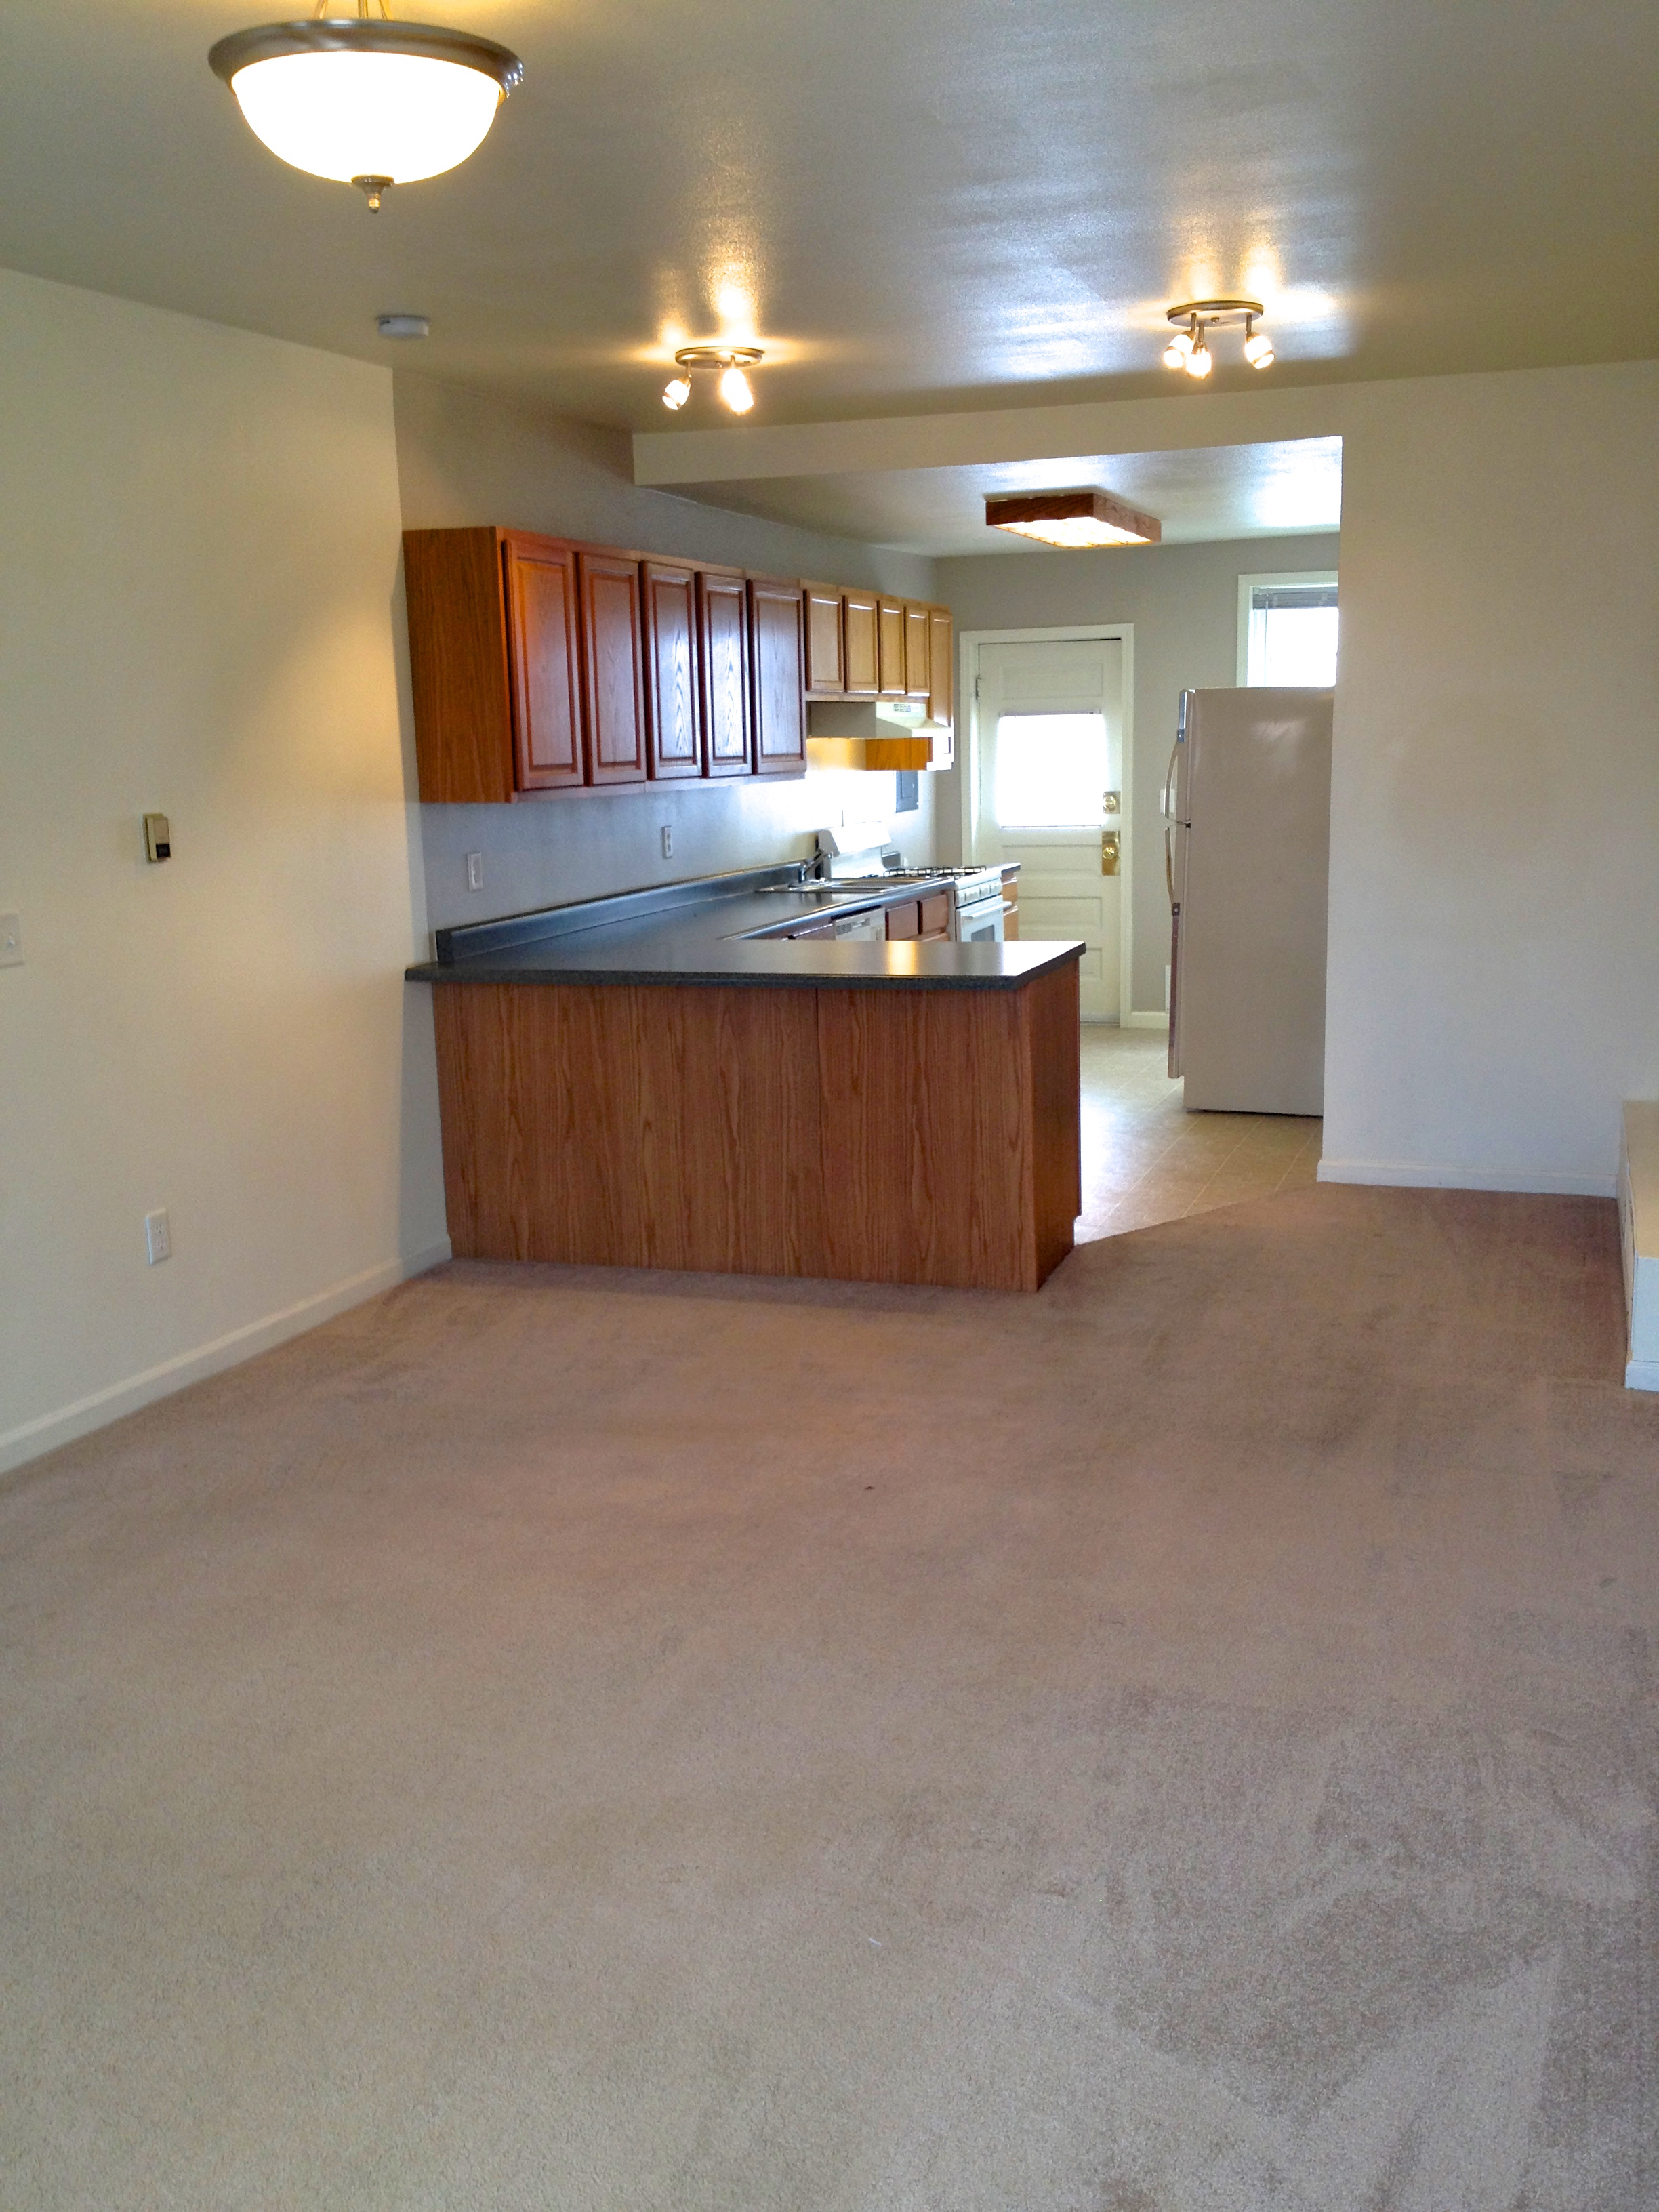 1 bedroom 1 bathroom apartment available soon 309 casper rental central for Apartments for rent 1 bedroom 1 bath